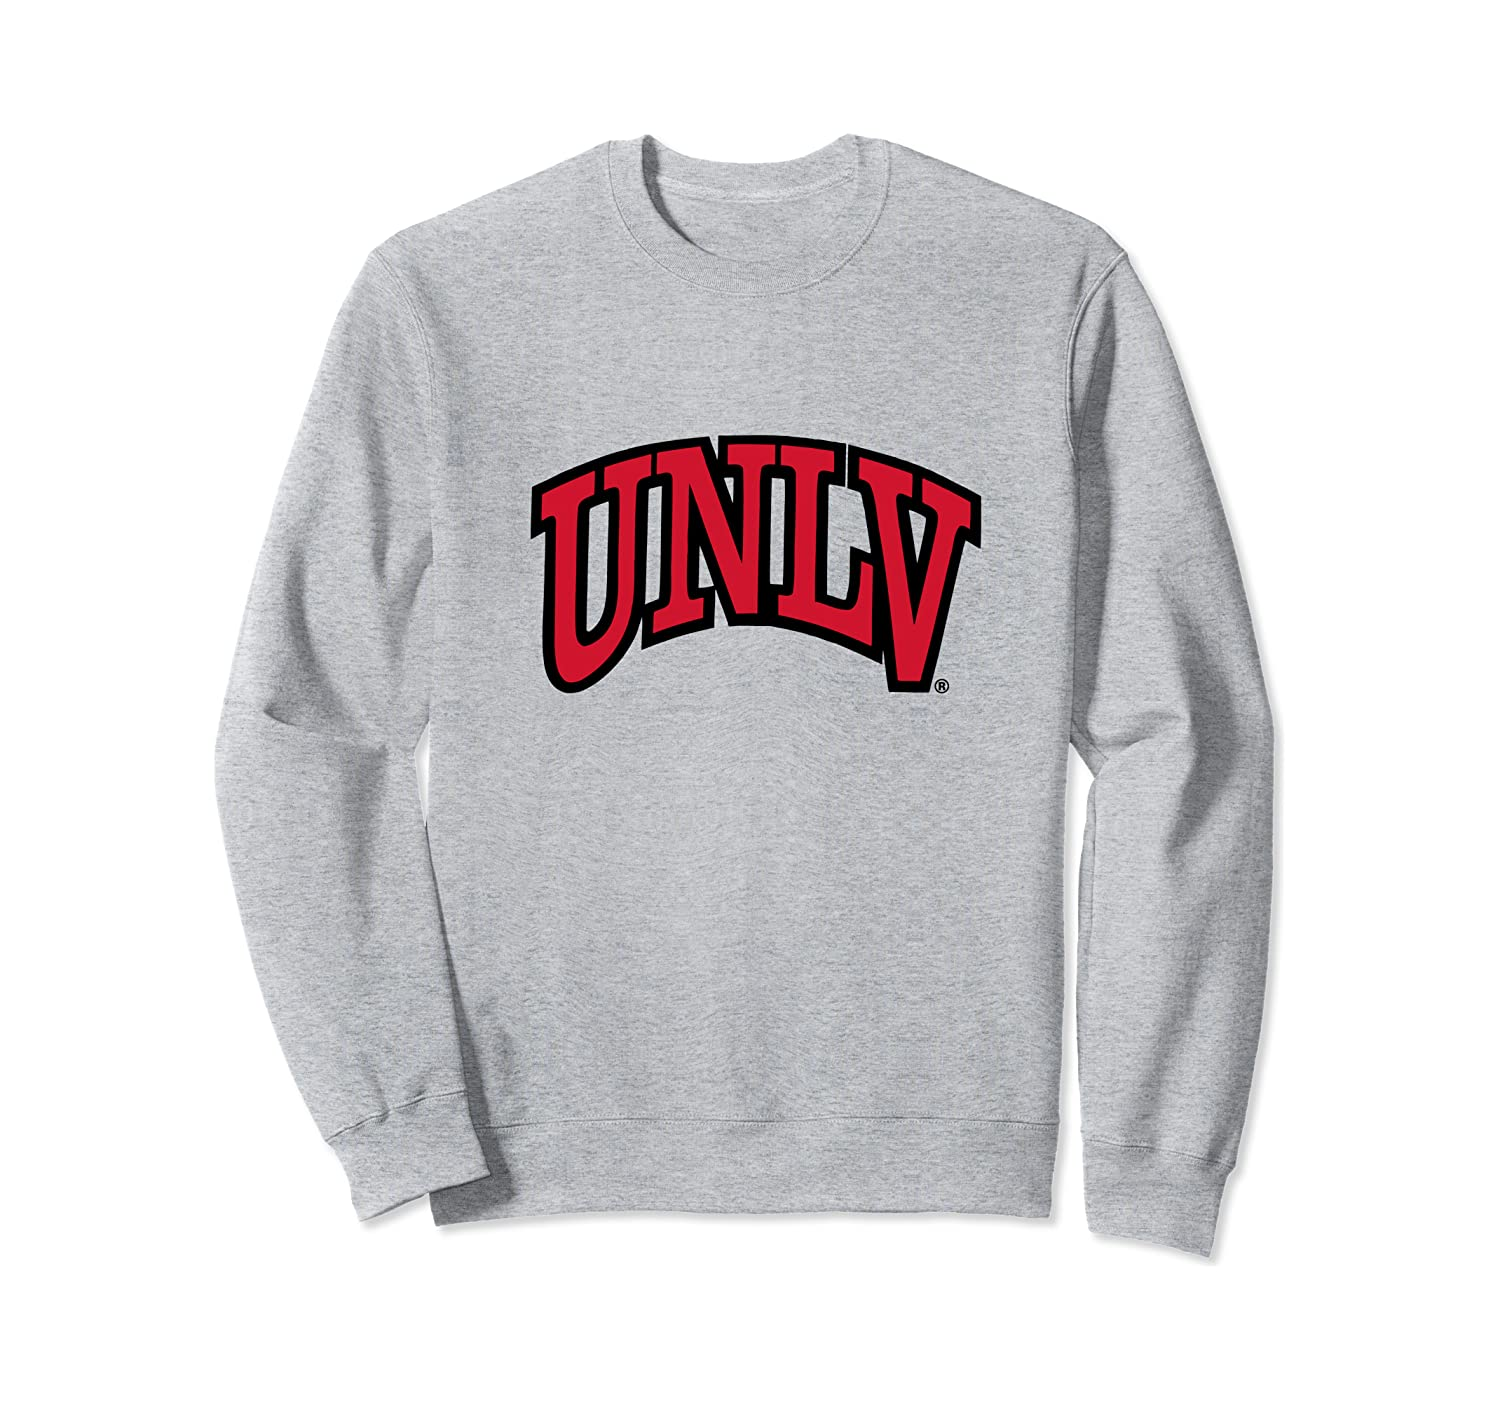 UNLV Rebels - Women's NCAA Sweatshirt PPNLU013